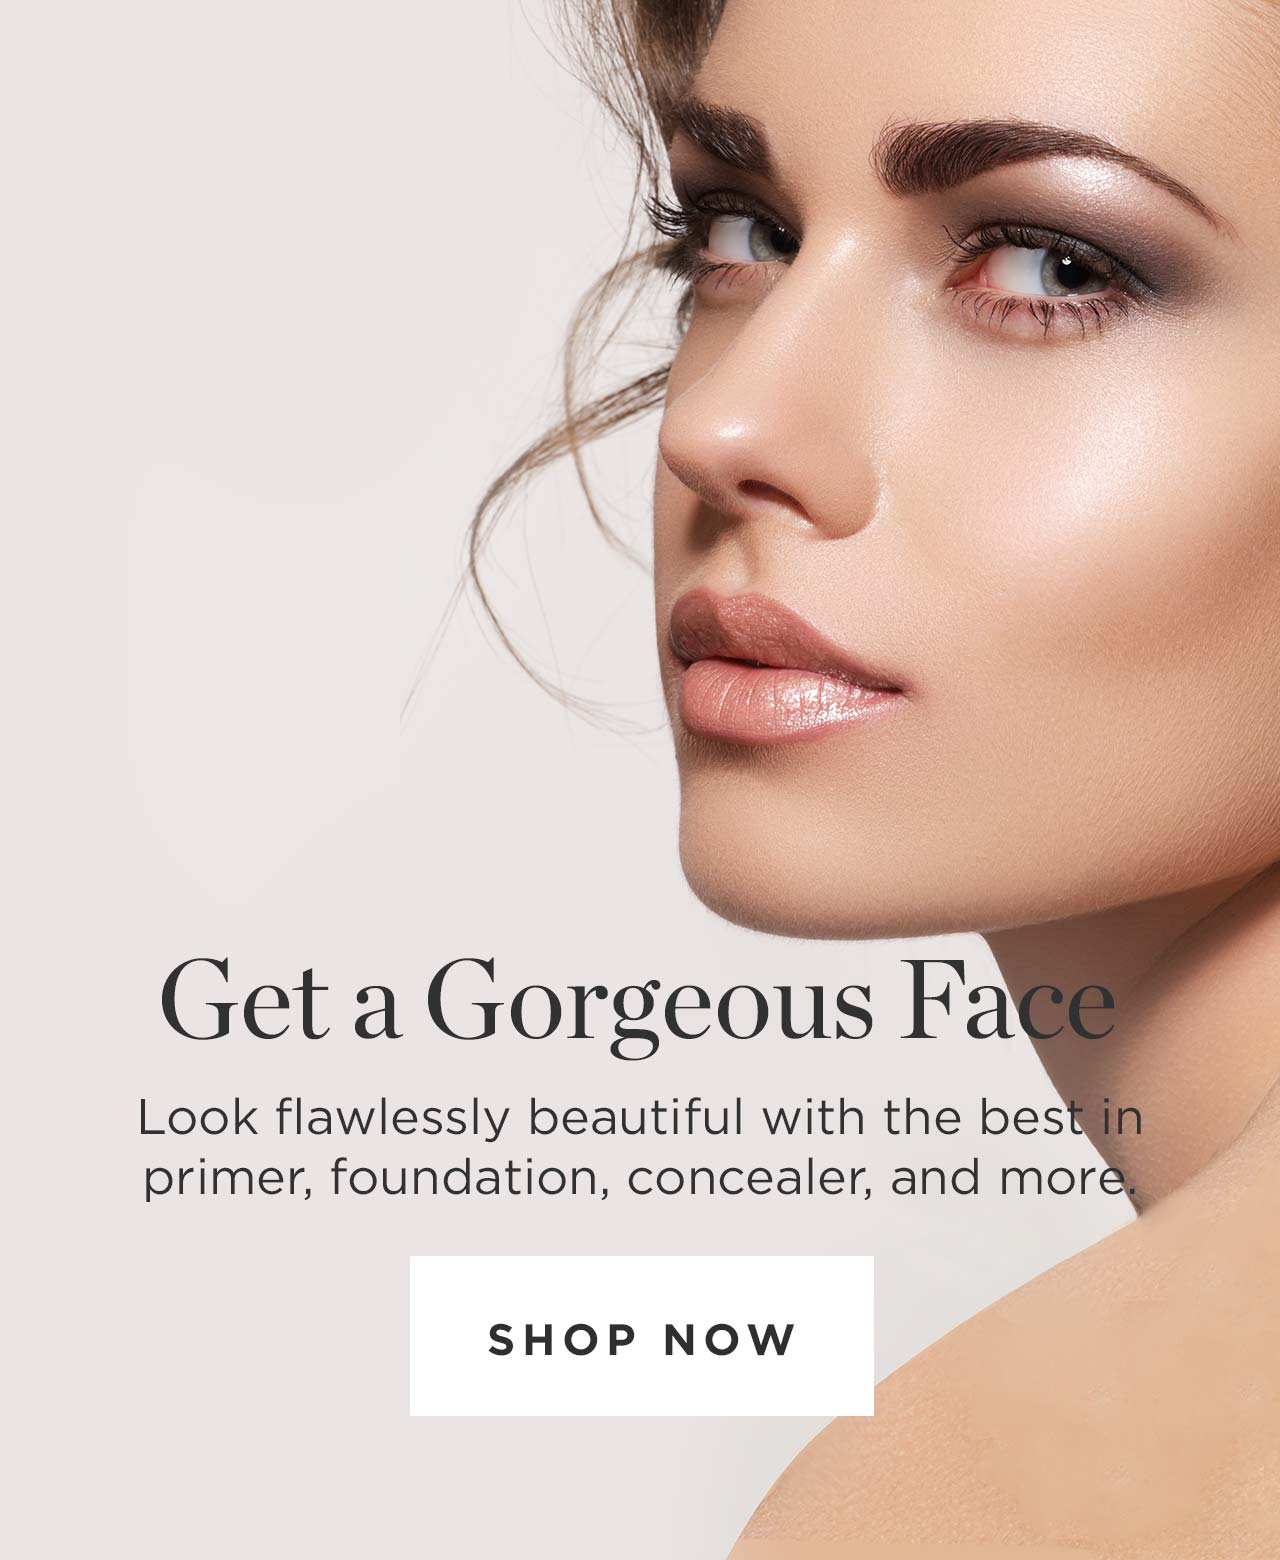 Get a Gorgeous Face